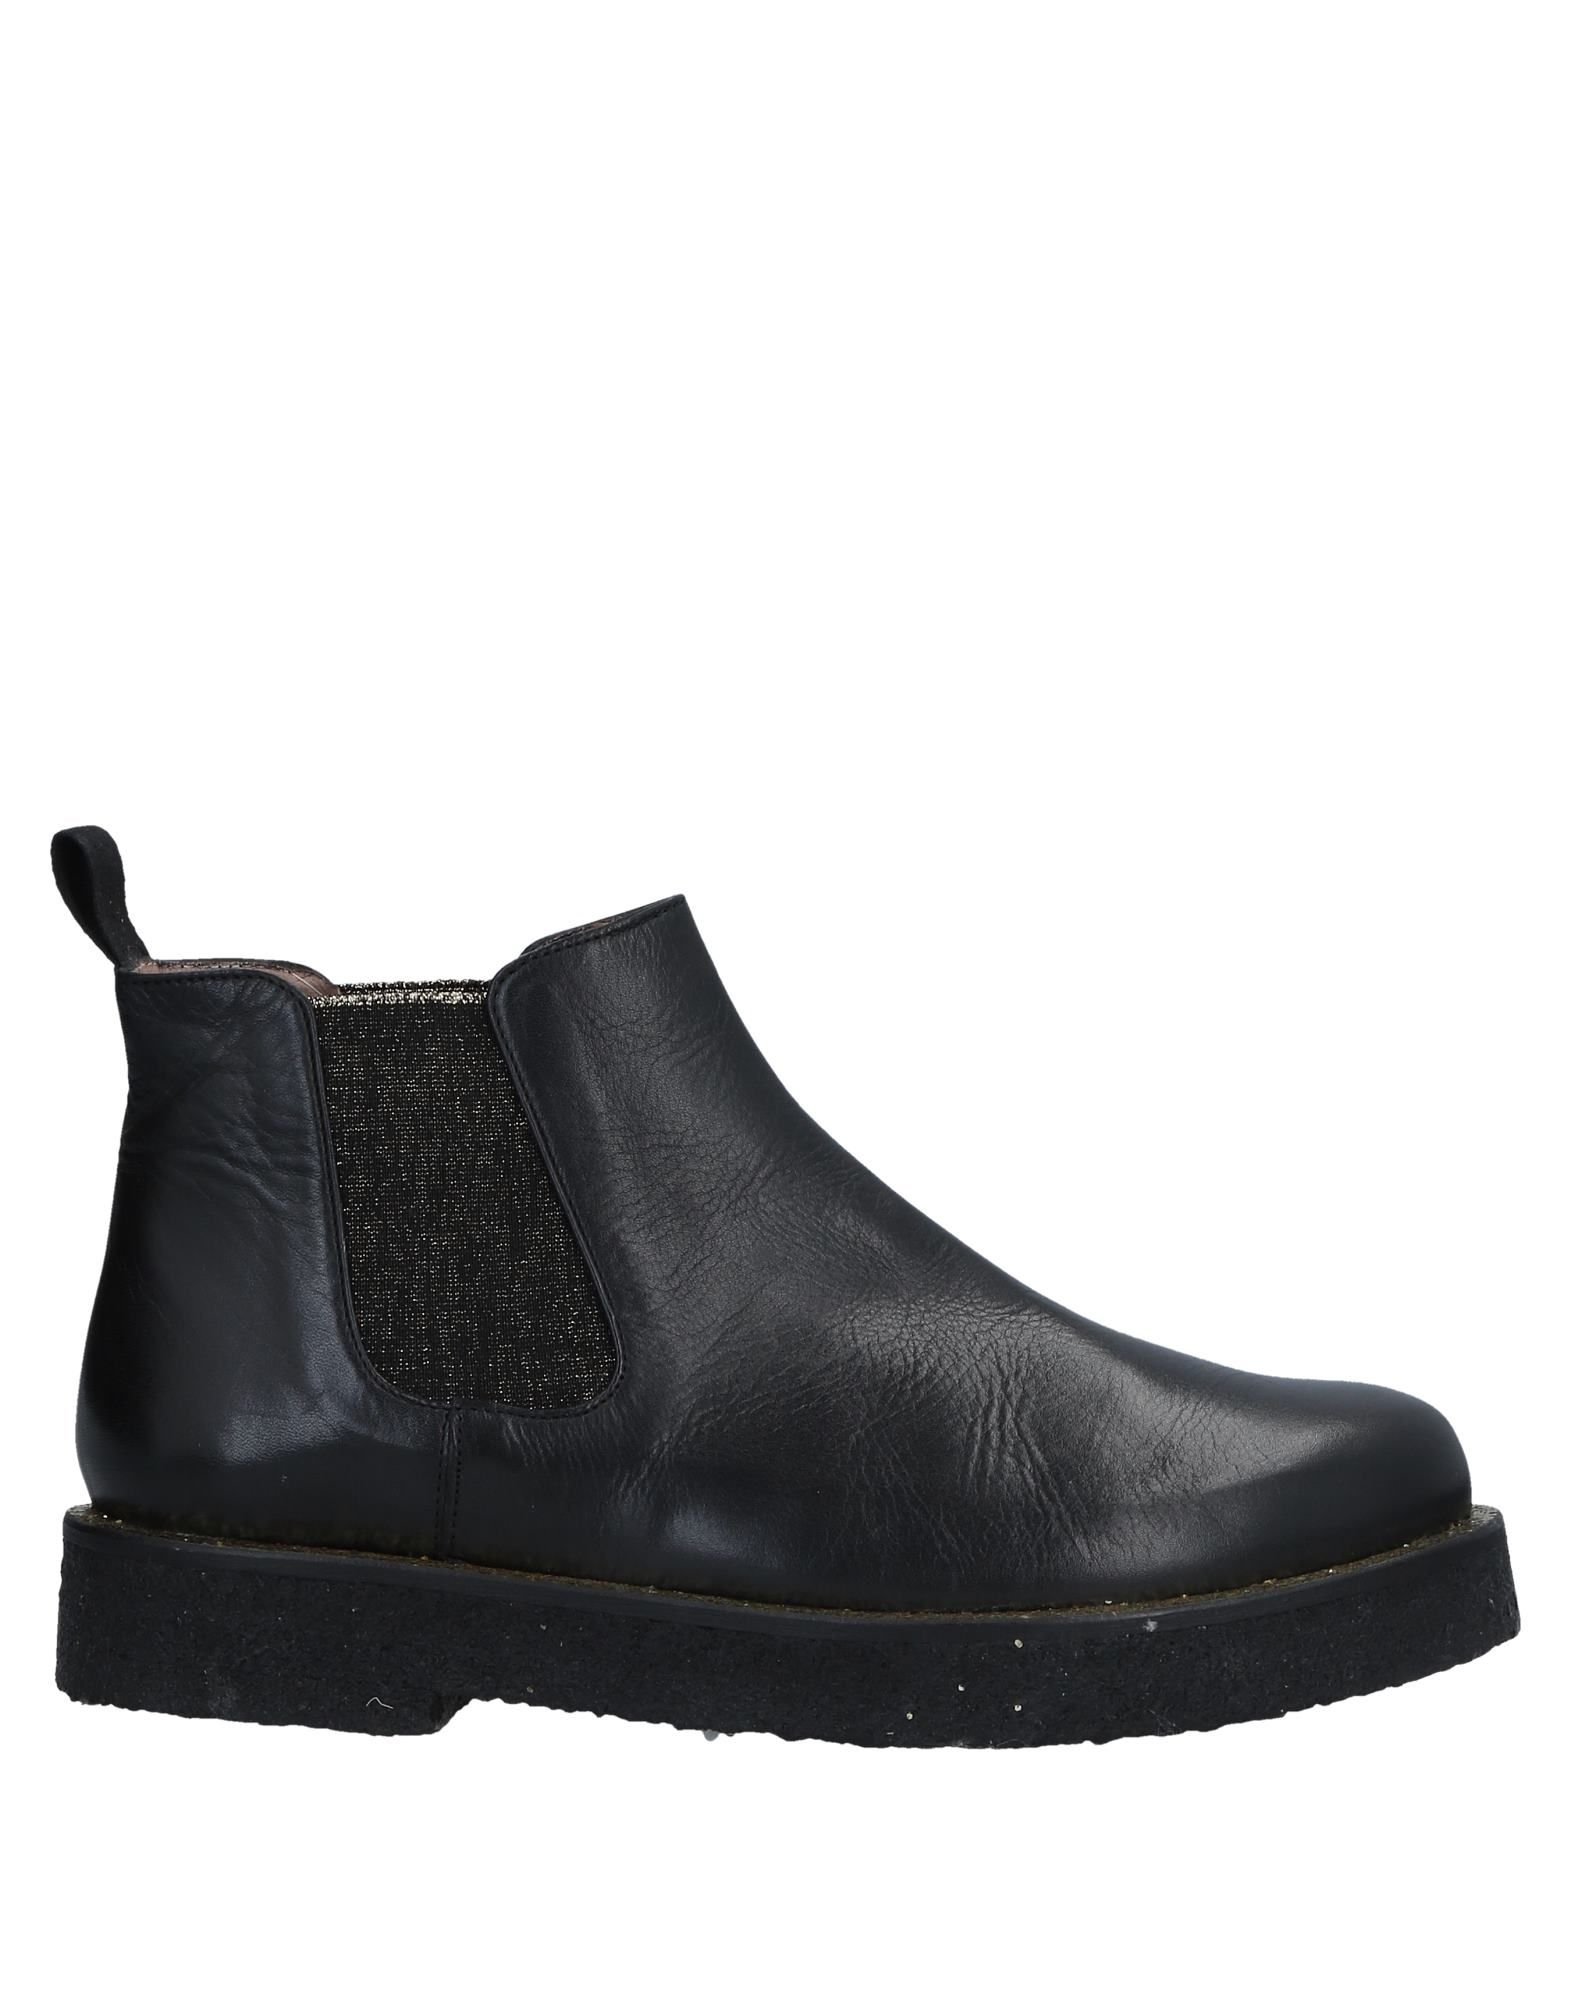 AVRIL GAU Ankle Boots in Black